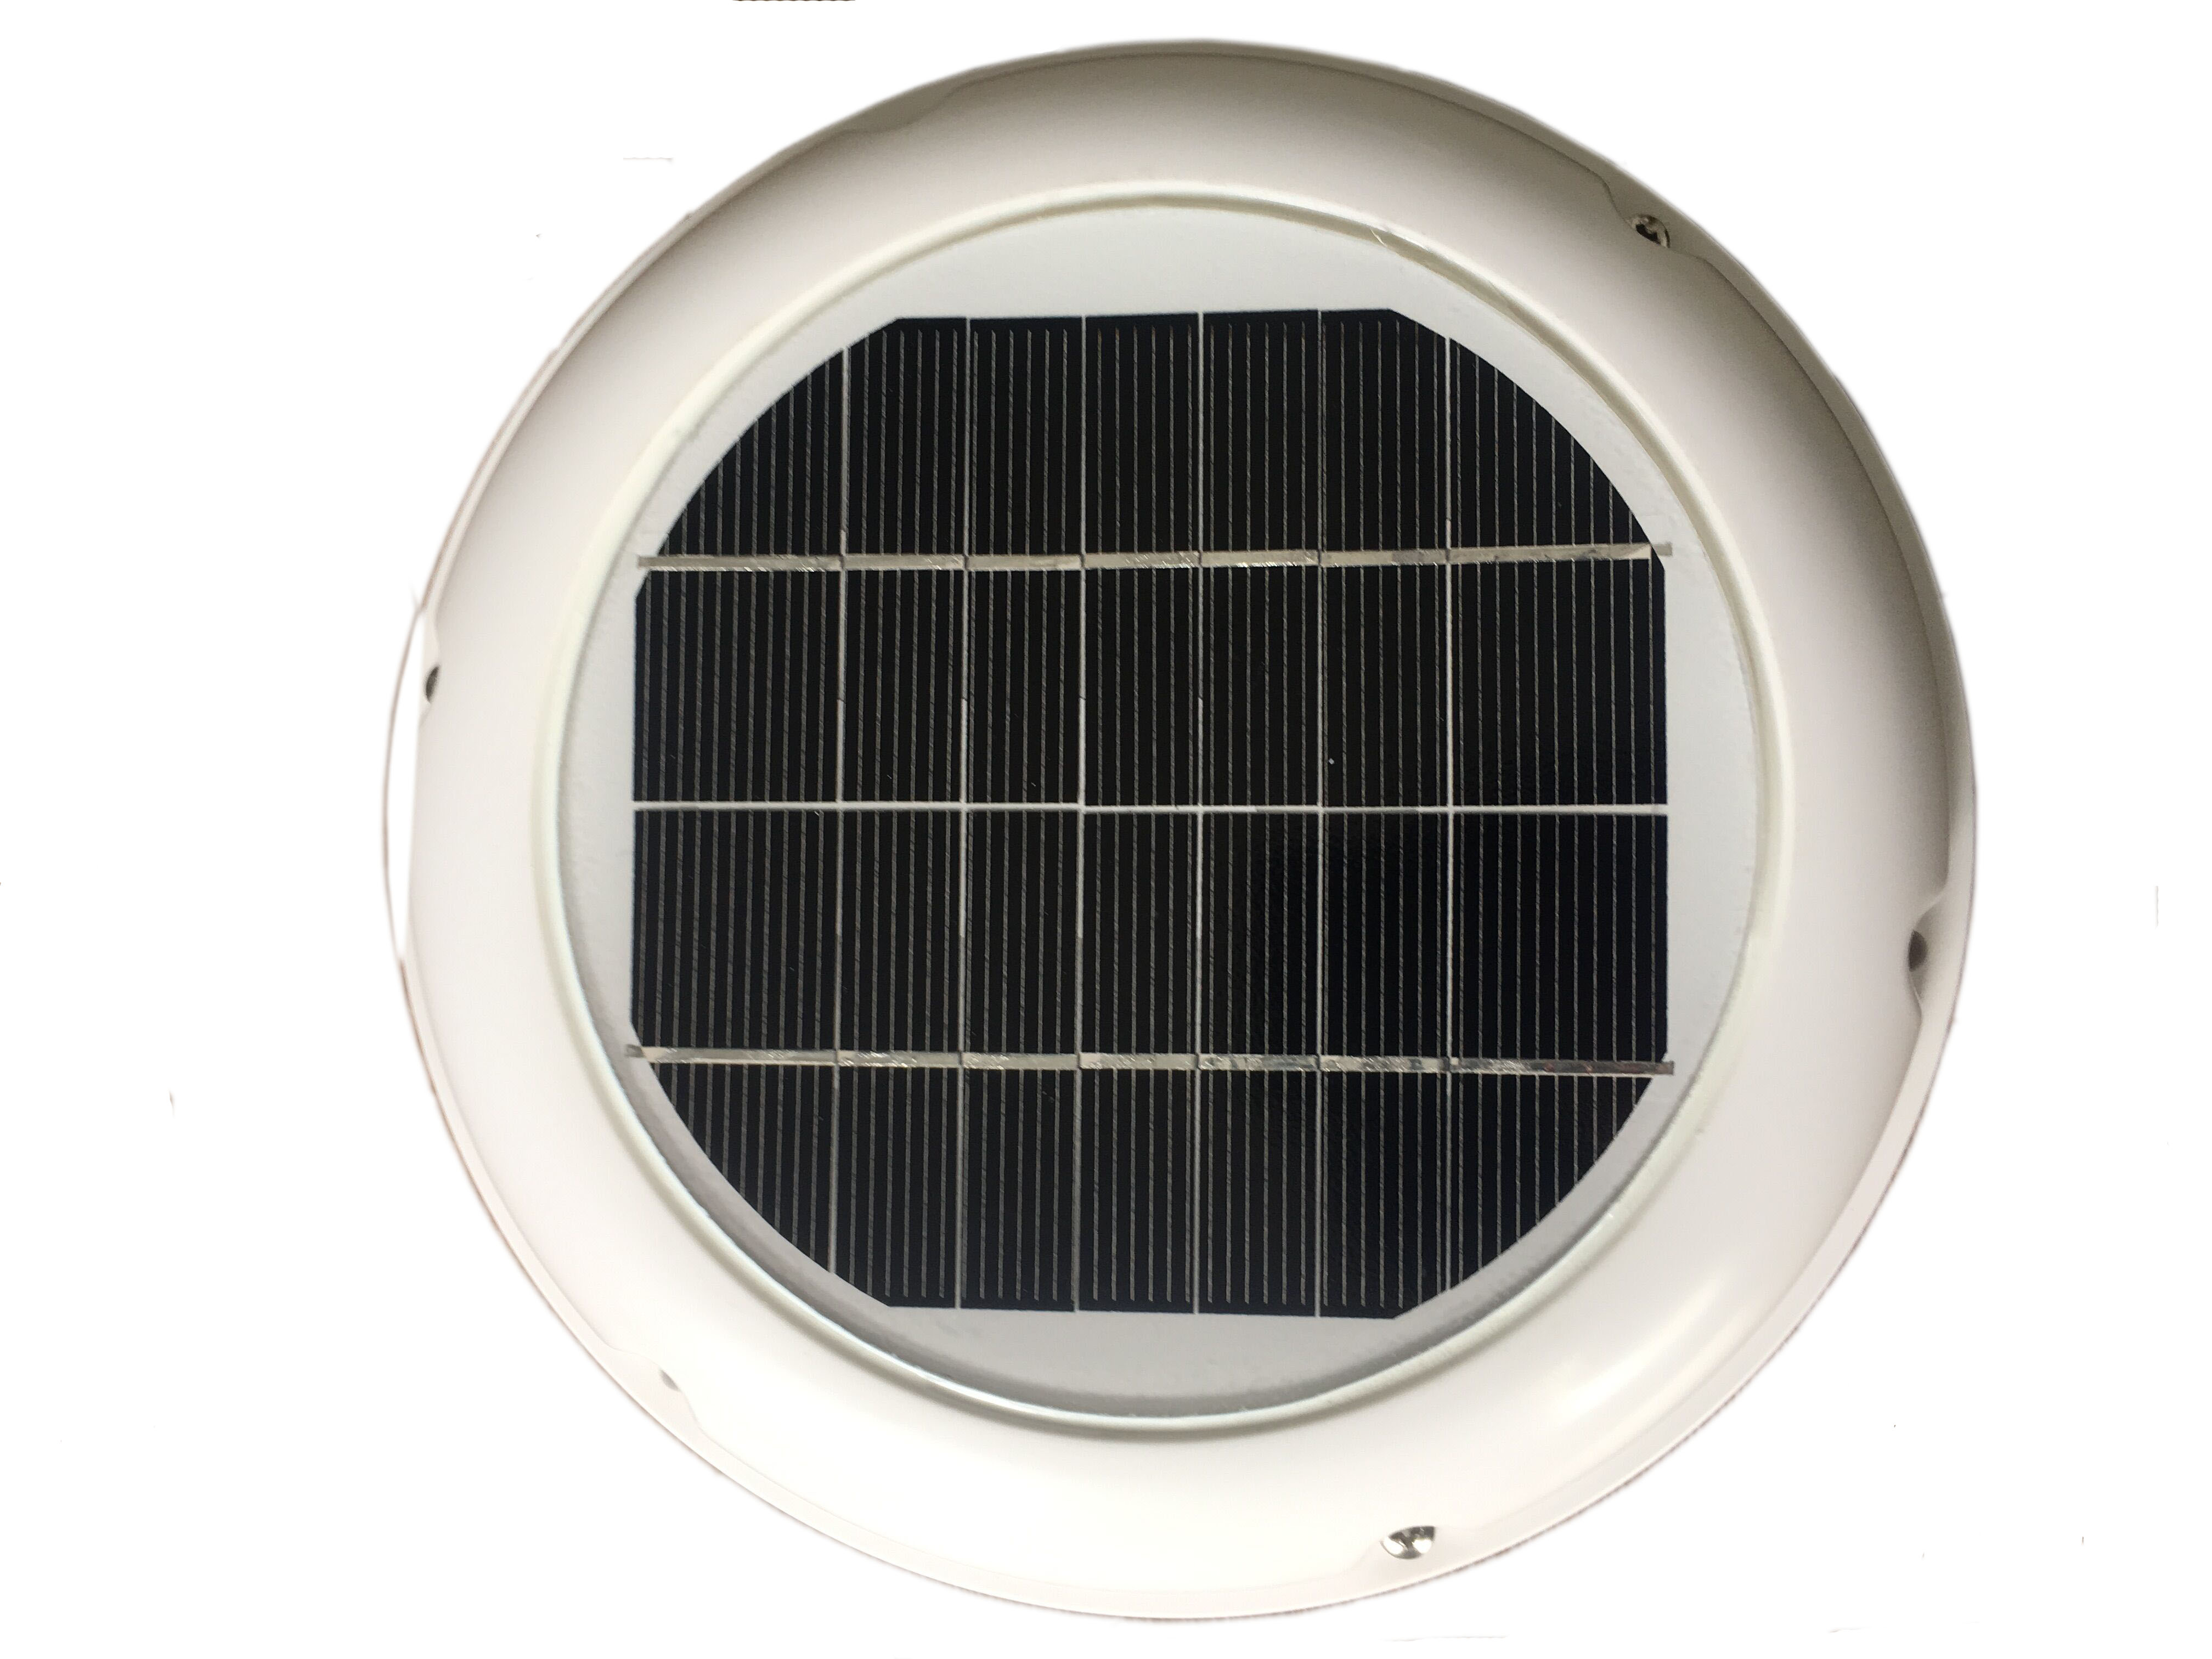 2.5W SOLAR ROOF VENTILATOR FAN AUTOMATIC VENTILATION USED FOR BATHROOM SHED HOME CONSERVATIONS CARAVANS BOATS GREEN HOUSE